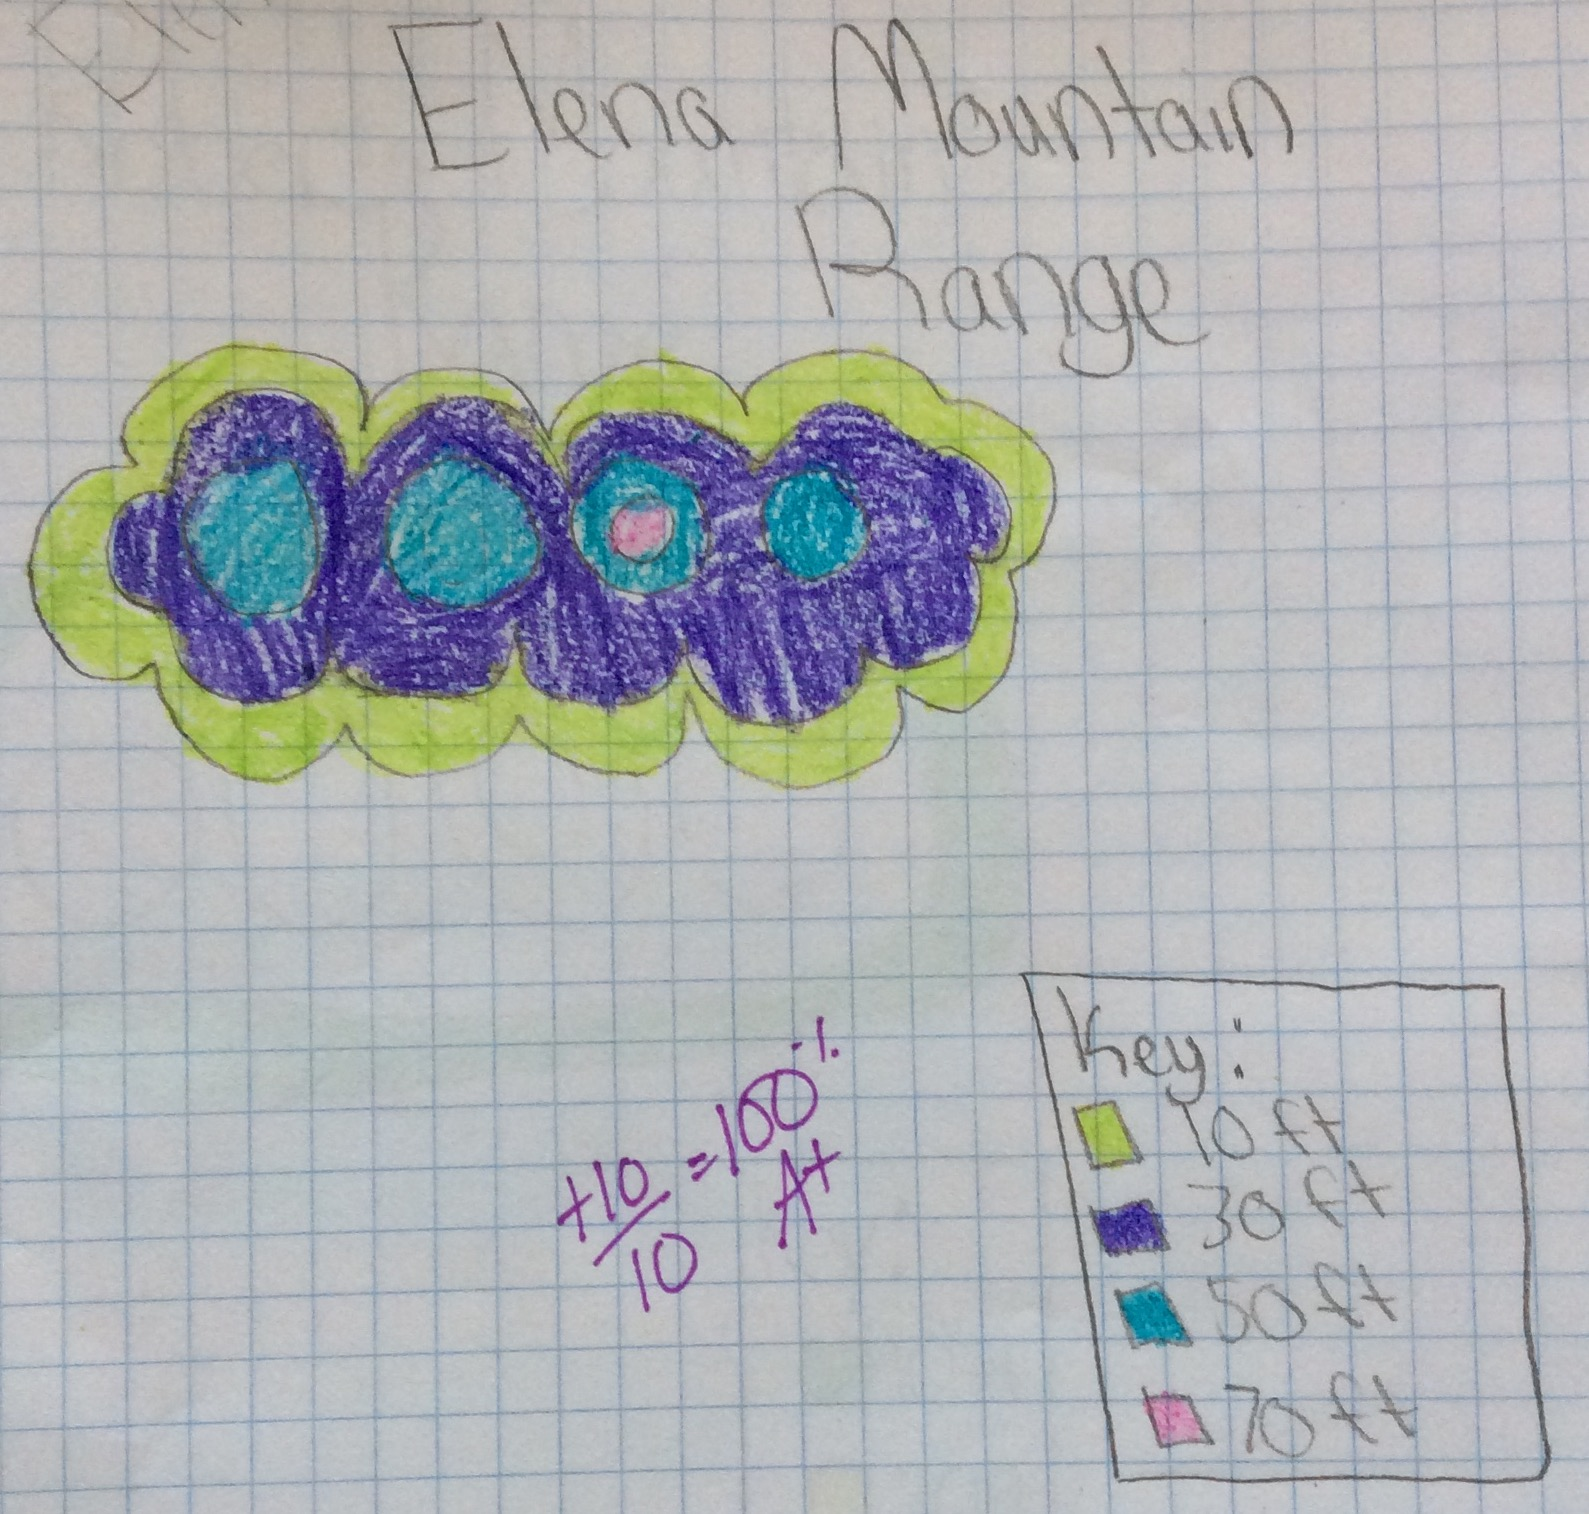 Elena created her topography map based on the shapes of her hand.